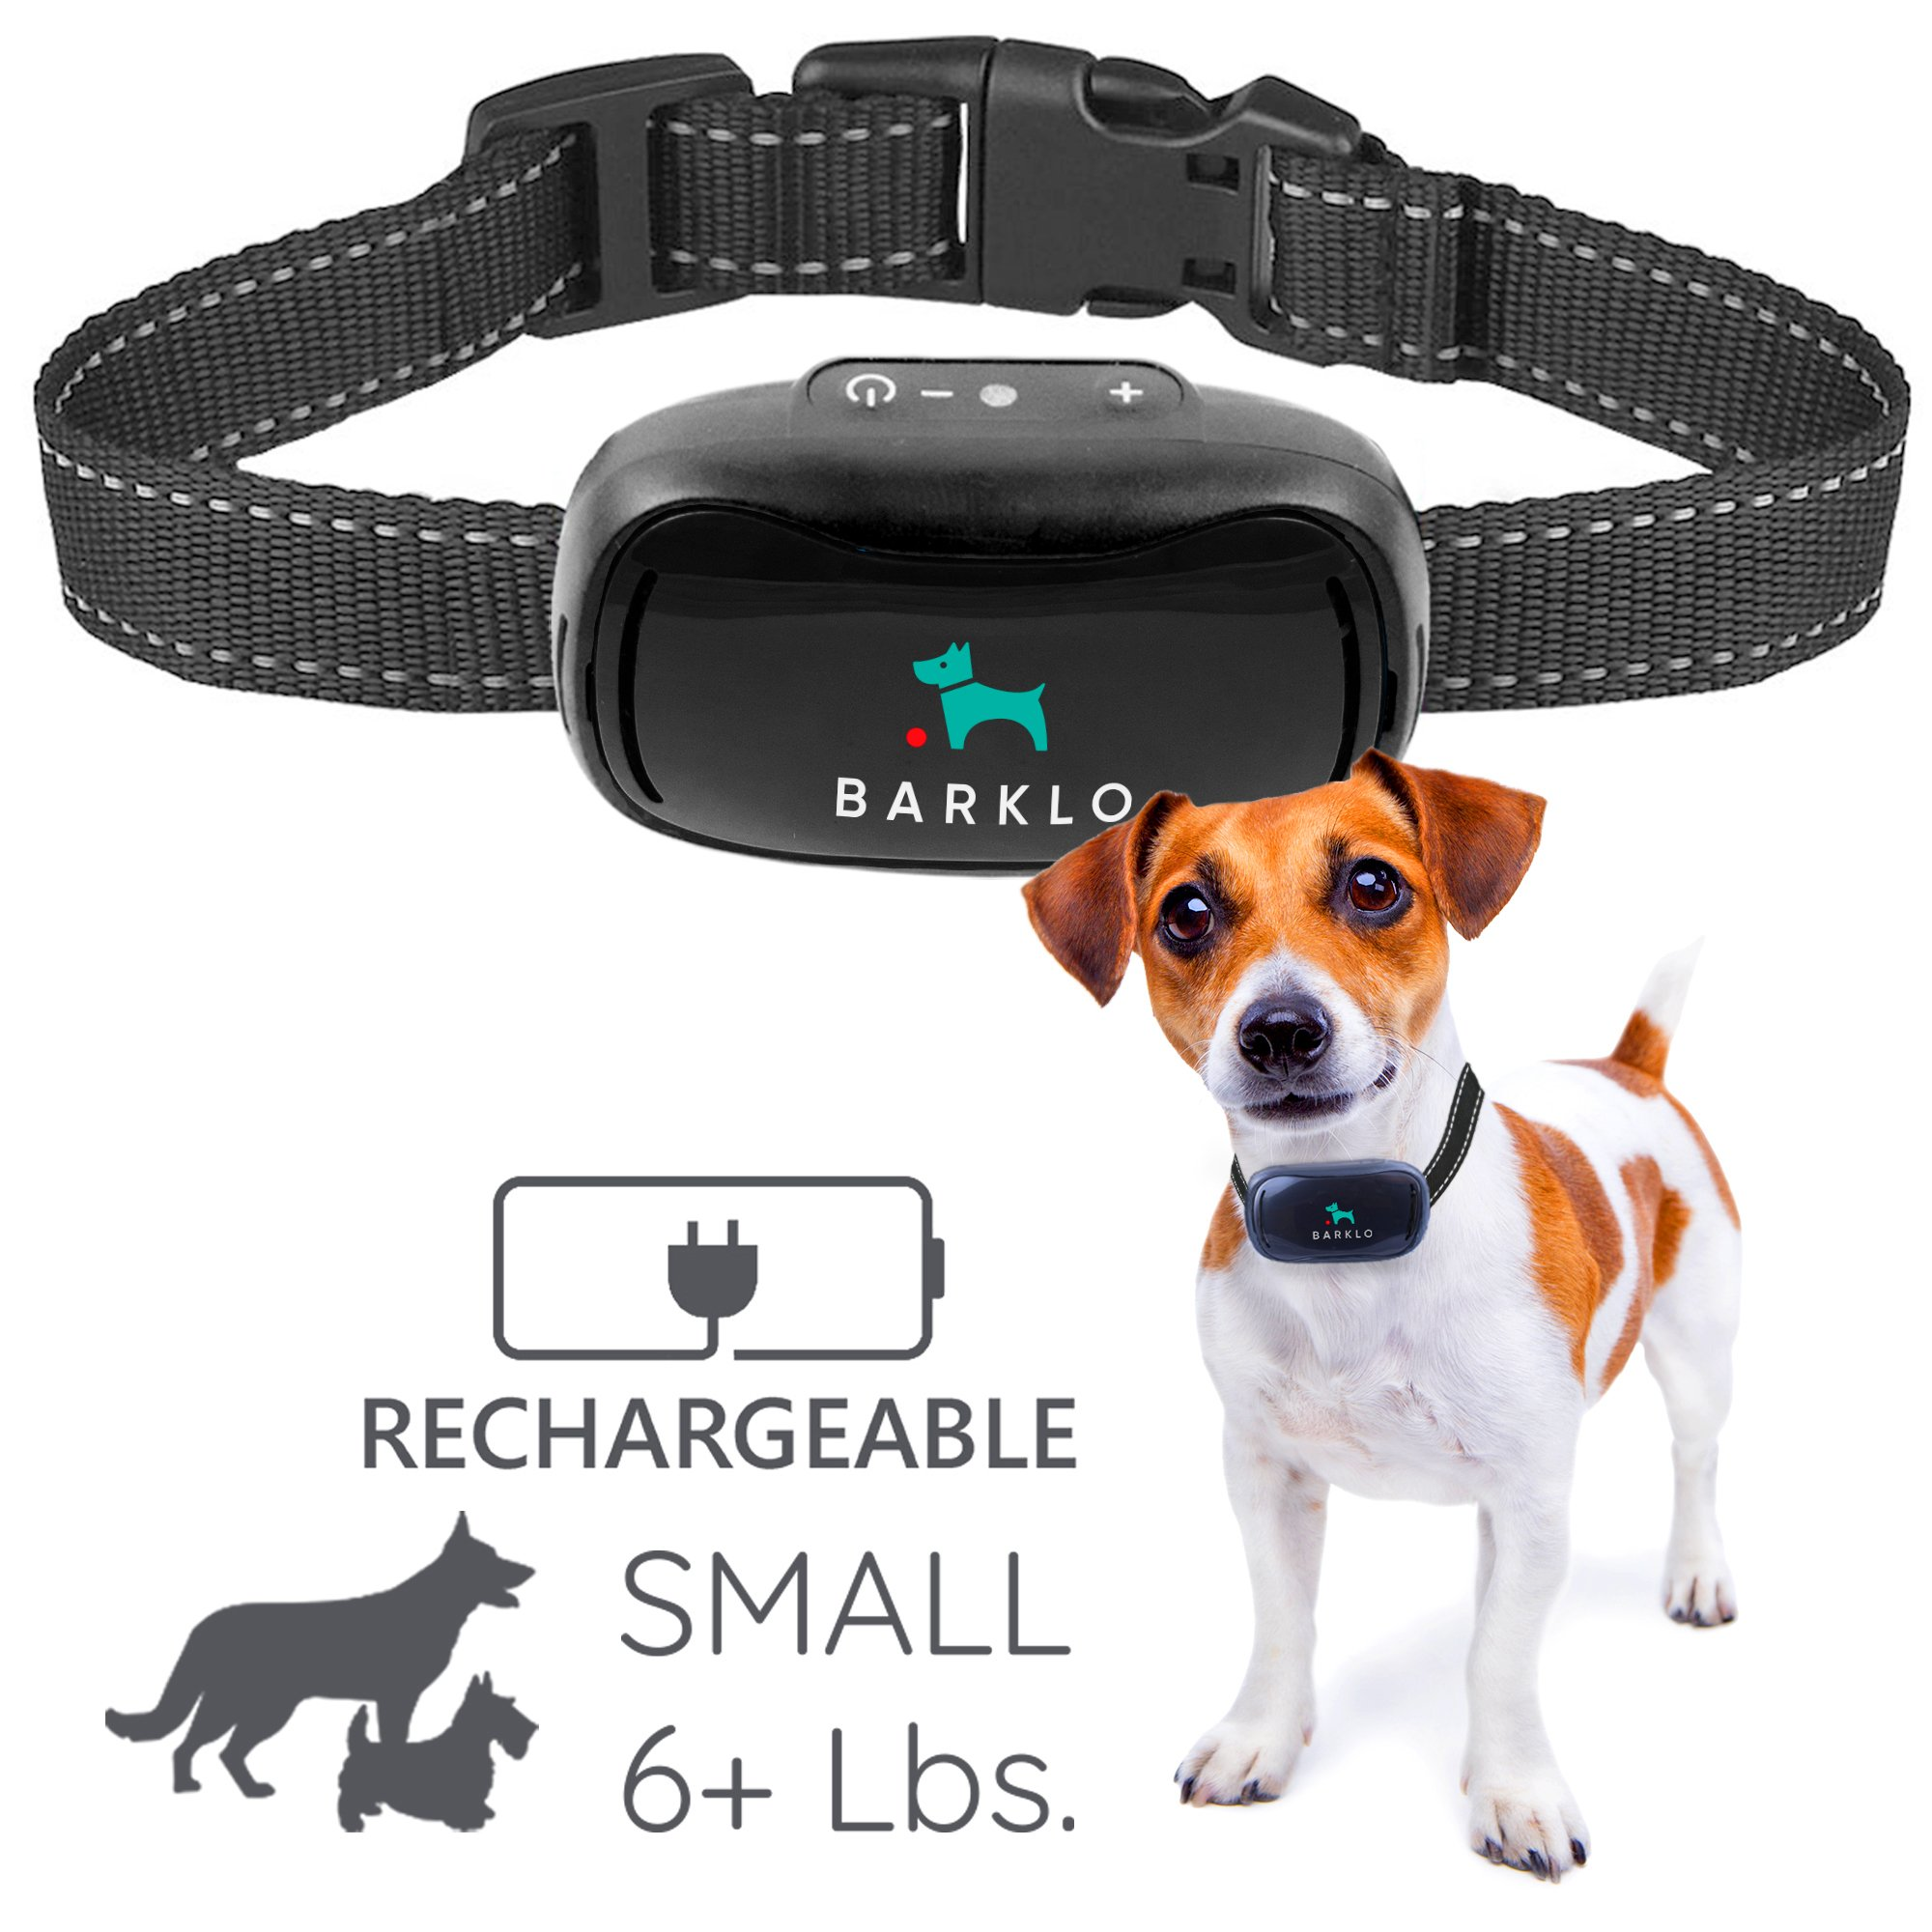 Barklo Small Dog Bark Collar for Tiny to Medium Dogs Rechargeable and Waterproof Vibrating Anti Bark Training Device - Smallest & Most Safe On Amazon - No Shock No Spiky Prongs! (6+ lbs)